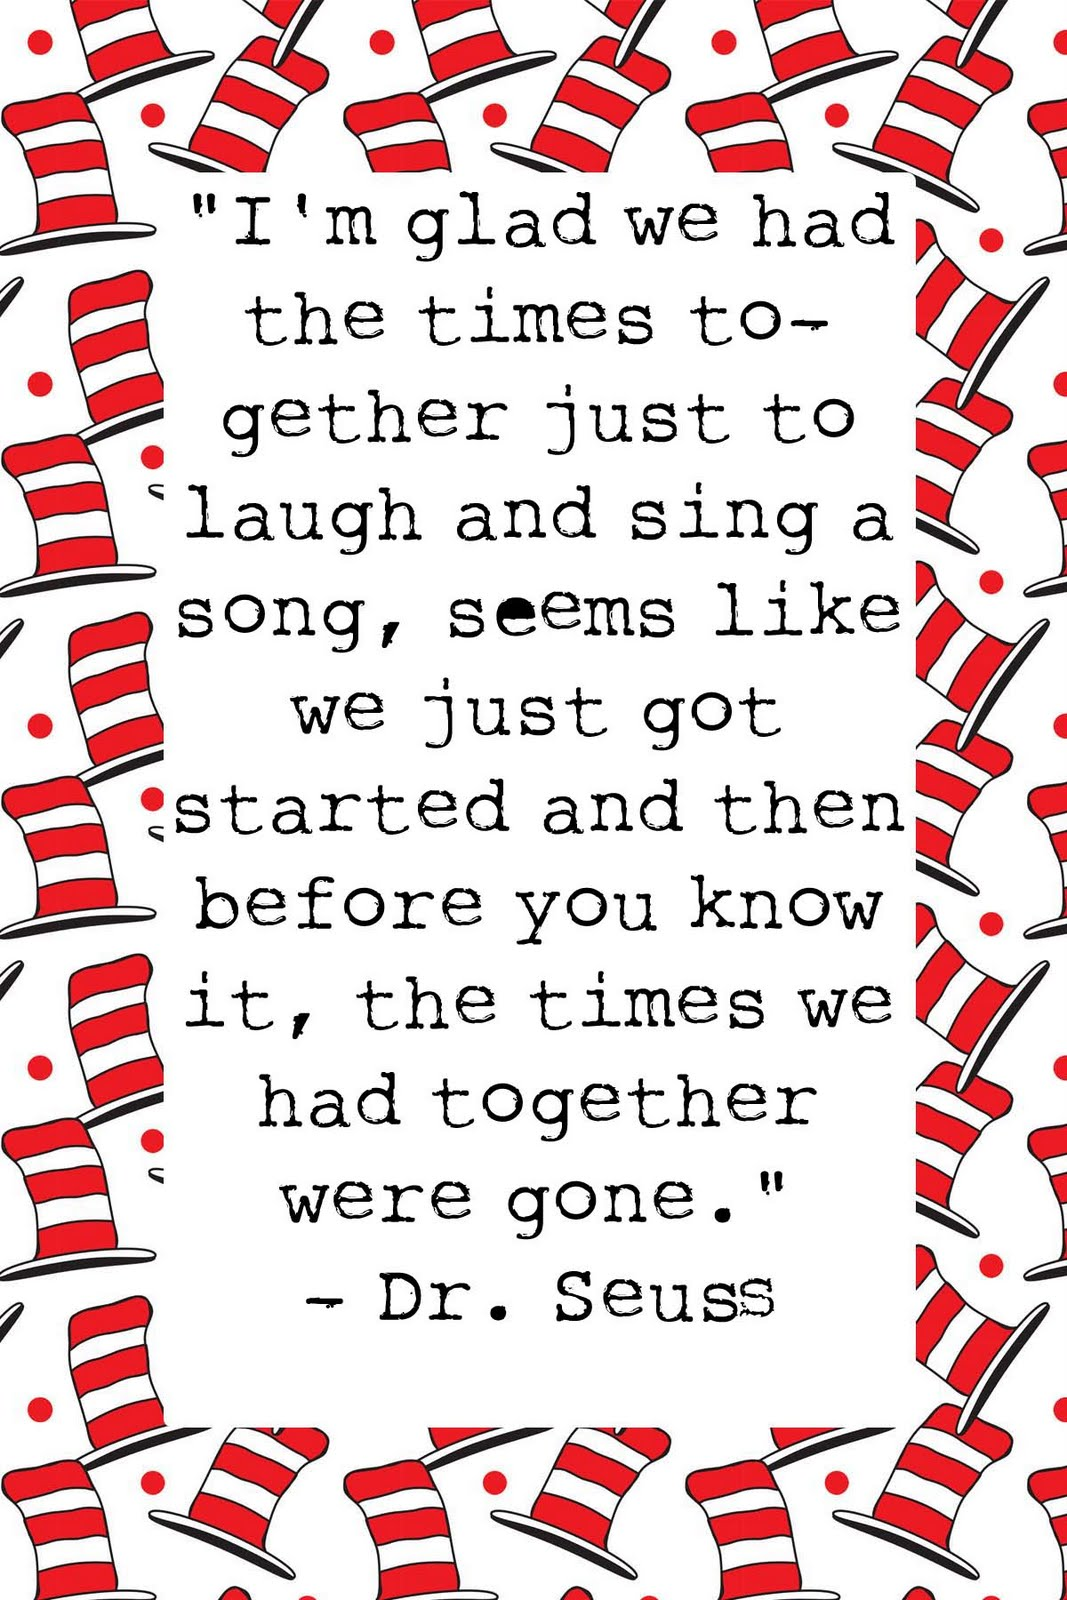 Dr Seuss Quotes About Love Cute Love Poems Dr Seuss Oh The Places You Ll Go On Dr Seuss